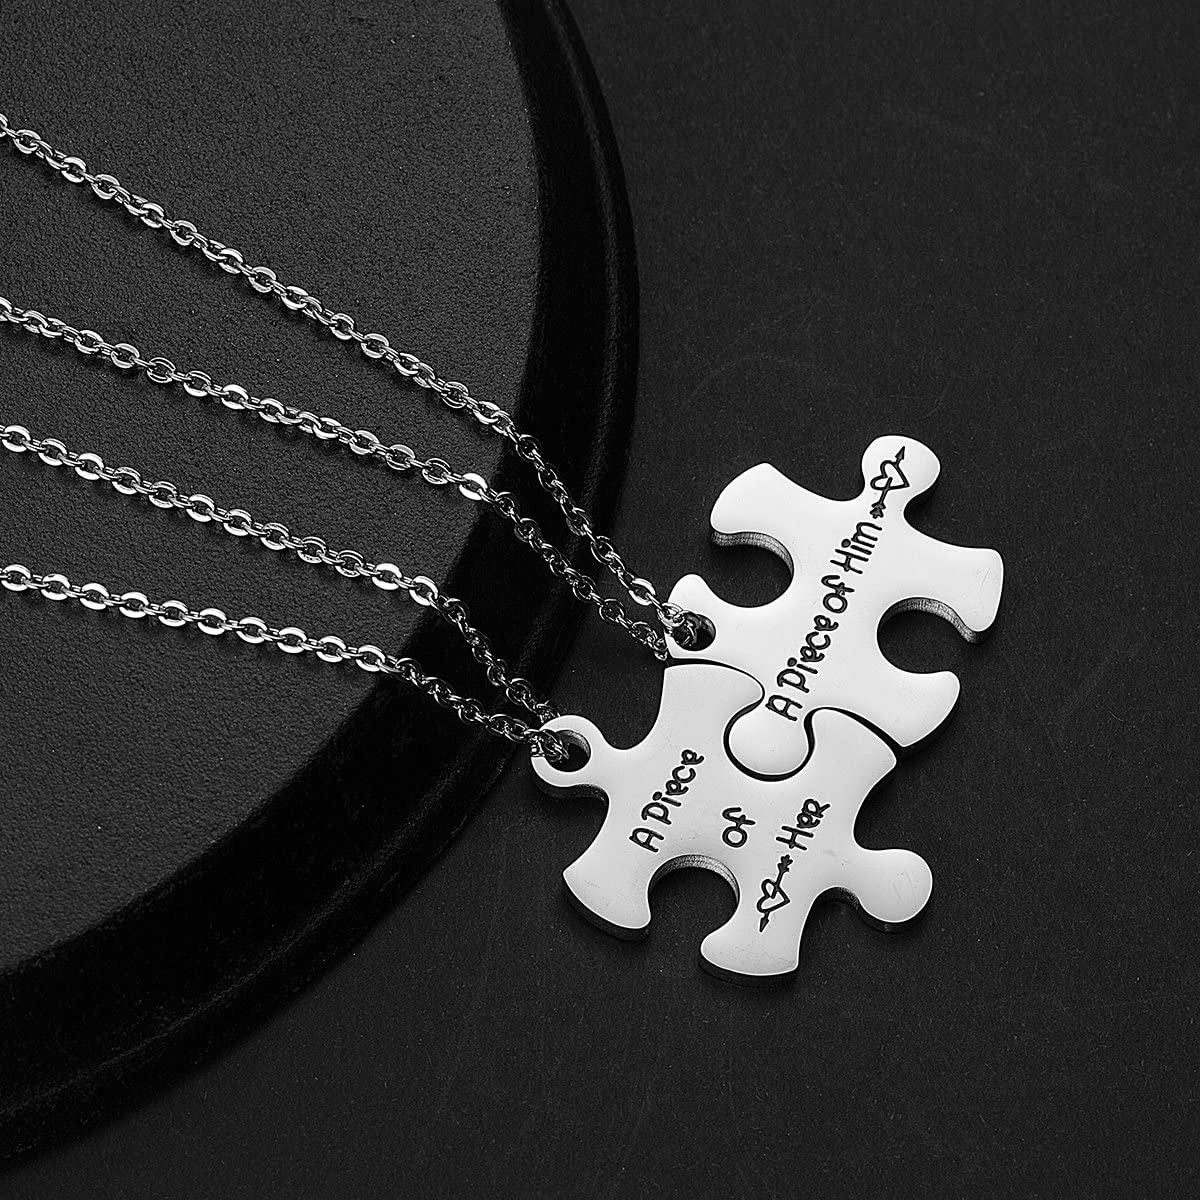 omodofo Valentines Day His and Hers Puzzle Piece Pendant Necklace KeyChain Set Personalized Couples Stamped Chain Keyring